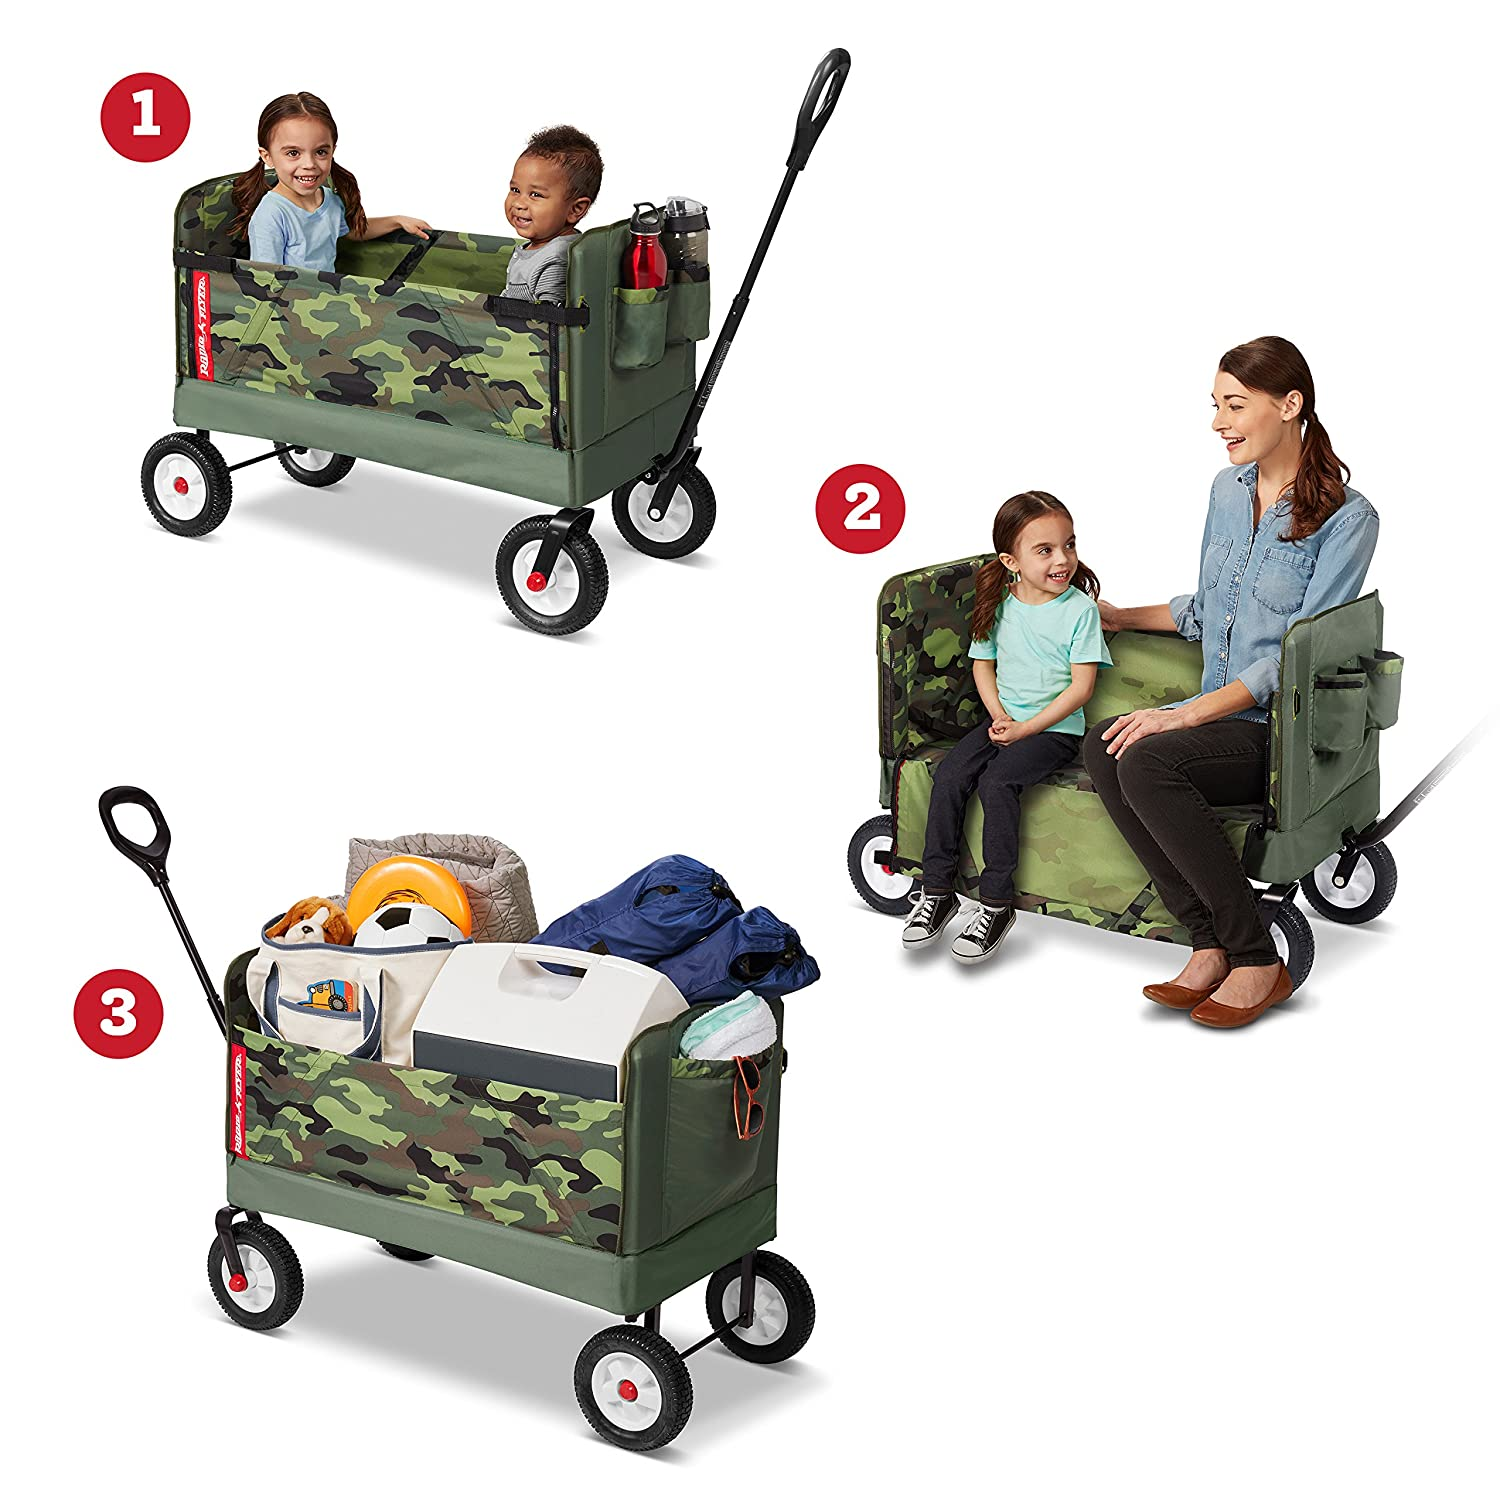 Radio Flyer EZ Fold Camo Wagon ONLY $69.99 Shipped (Reg $100)